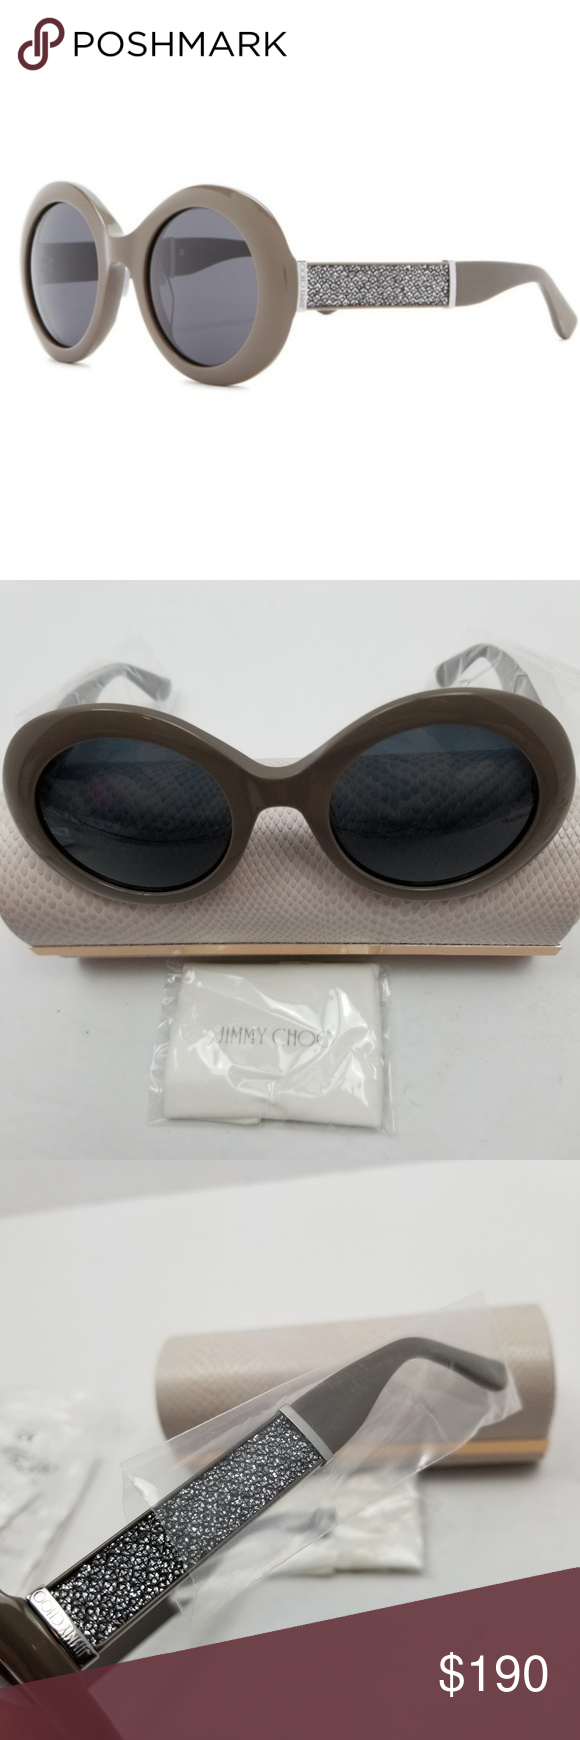 23acbc39850 NWT Jimmy Choo Wendy Round Glitter Sunglasses Gorgeous big round glitter  sunglasses from Jimmy Choo in